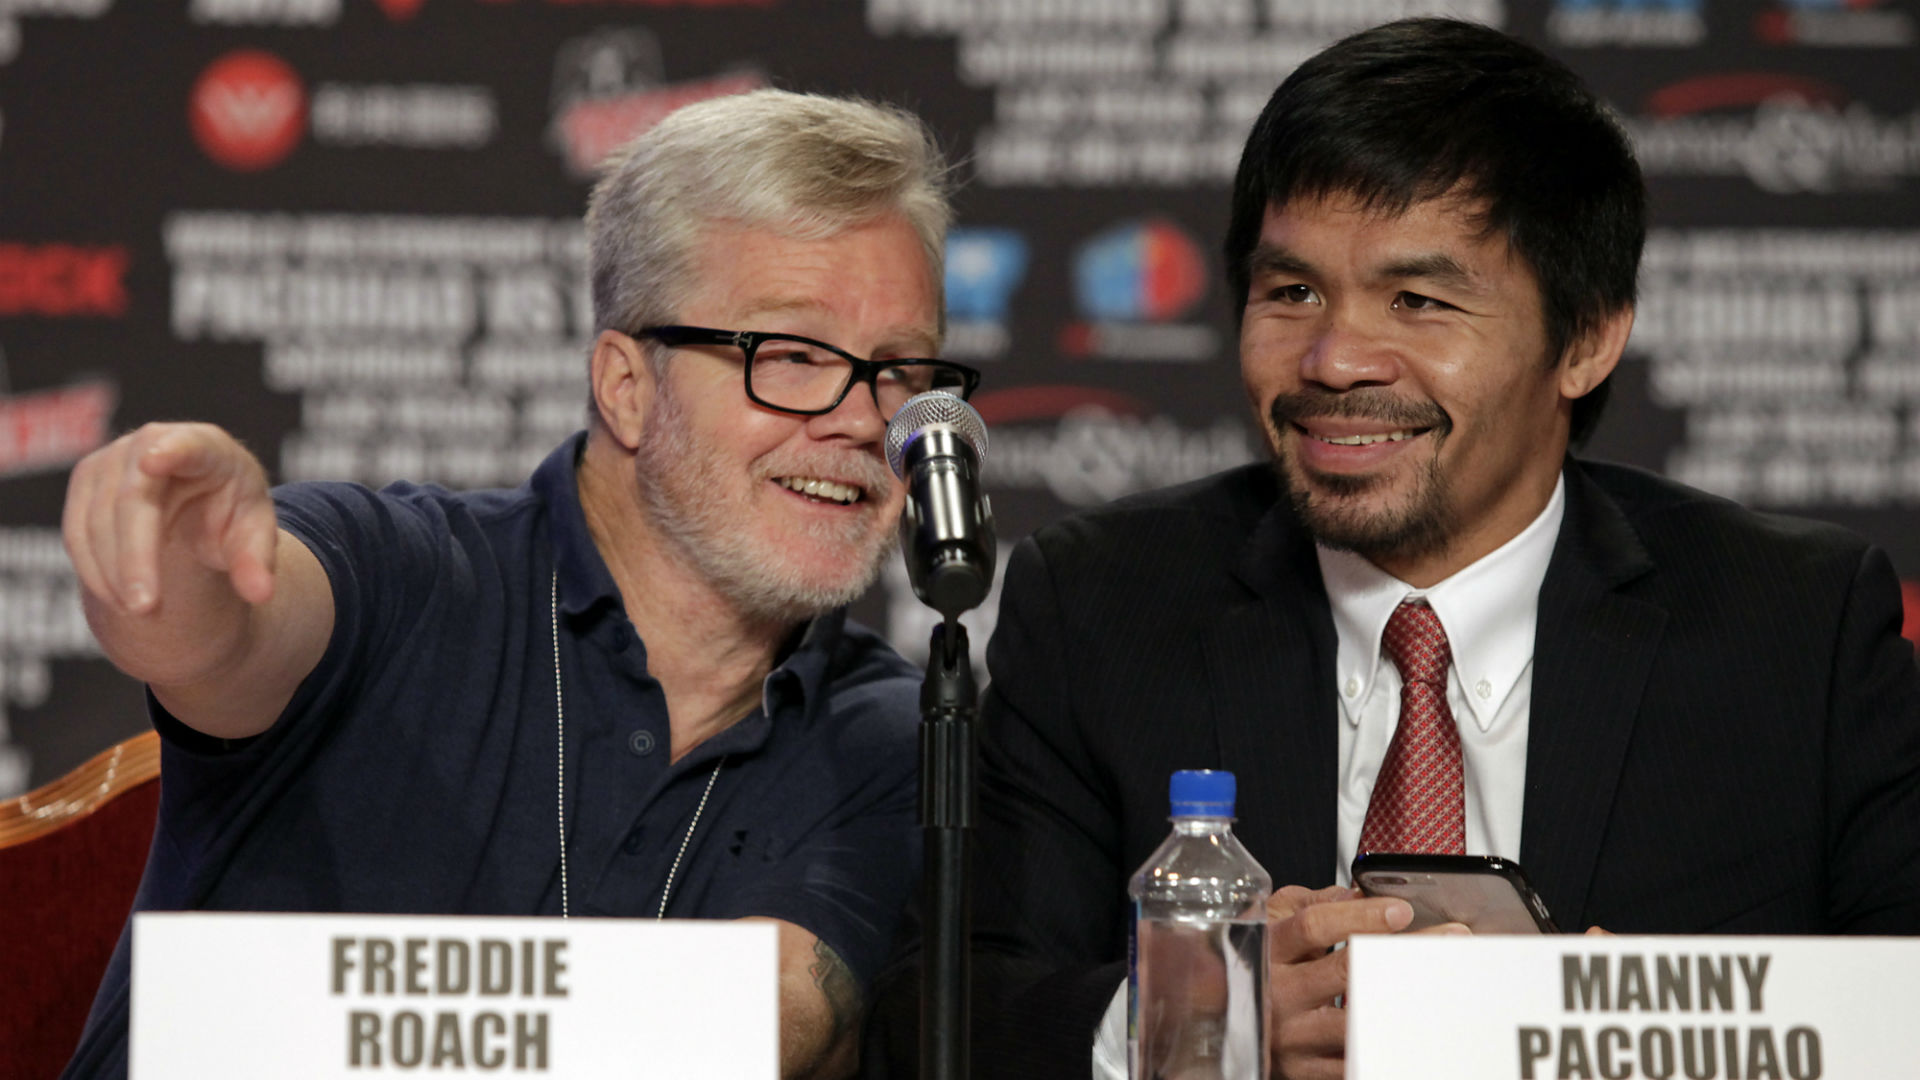 Freddie Roach on Manny Pacquiao losing his killer instinct, how he'll beat Keith Thurman and training Ivan Baranchyk